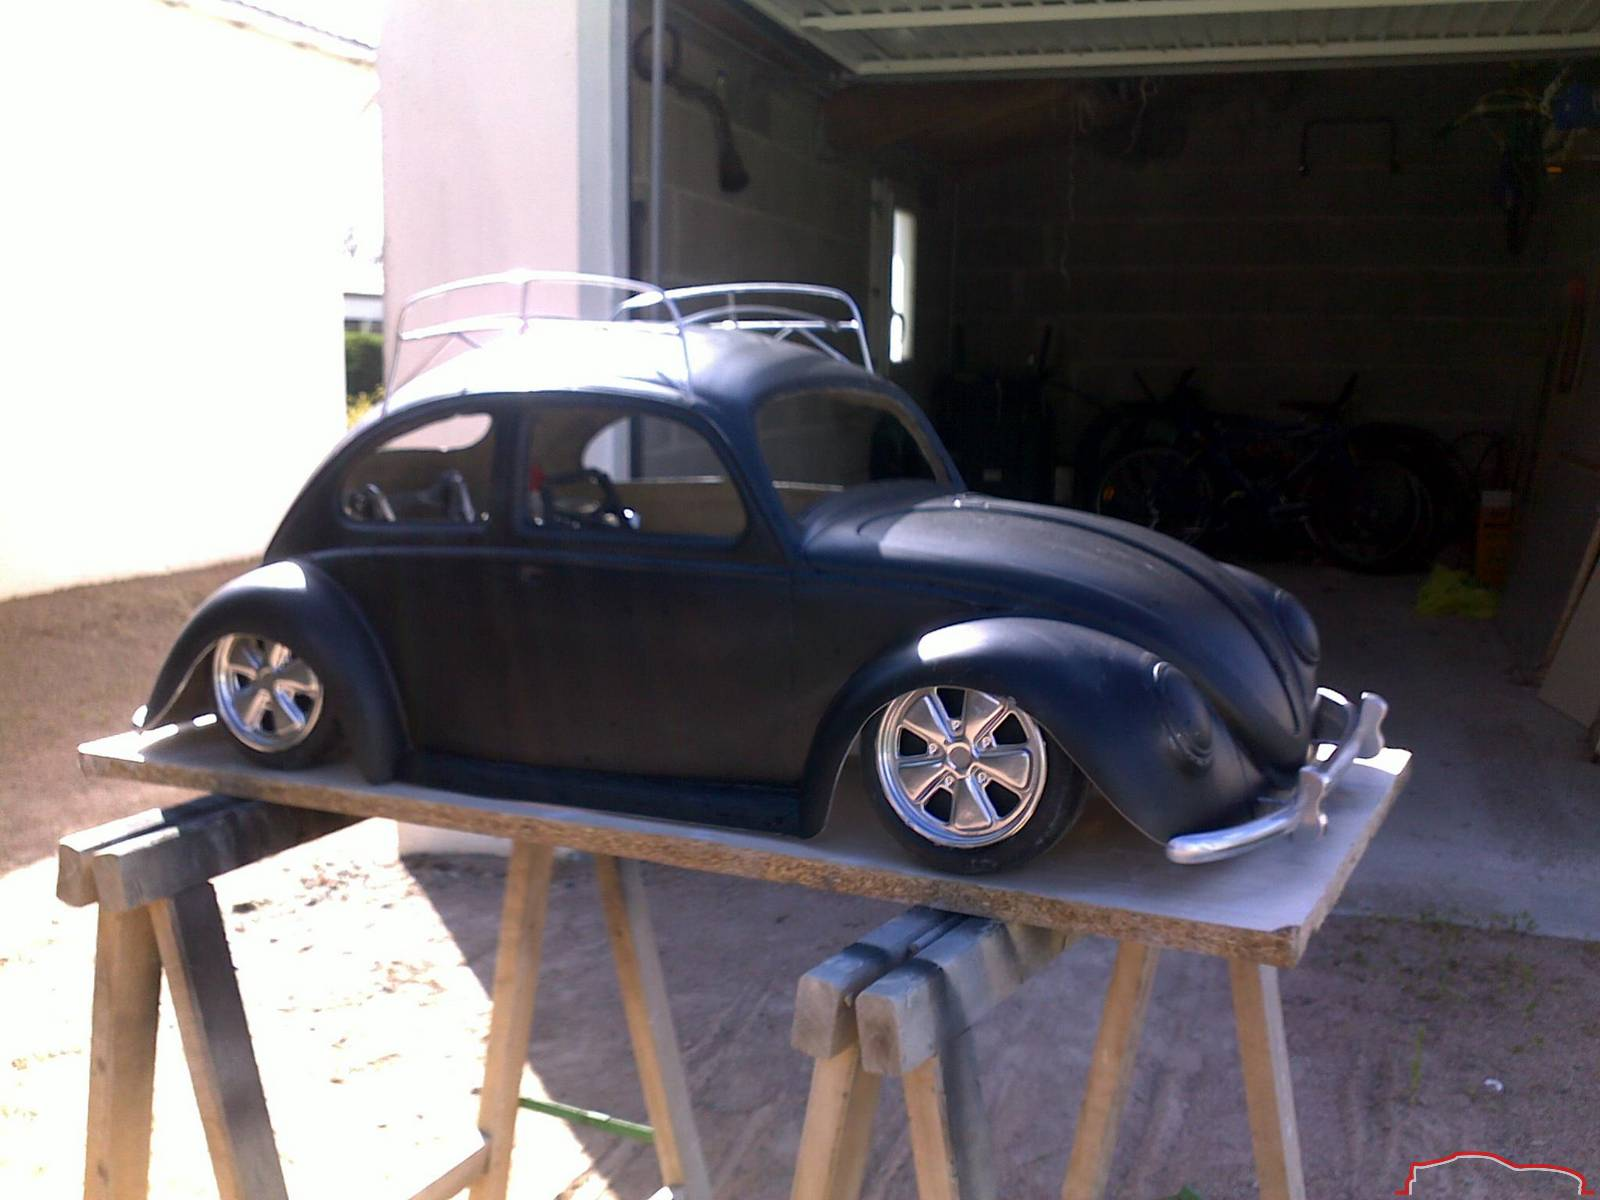 www Quarterscalelegends com • View topic - VW oval beetle 1:4 scale